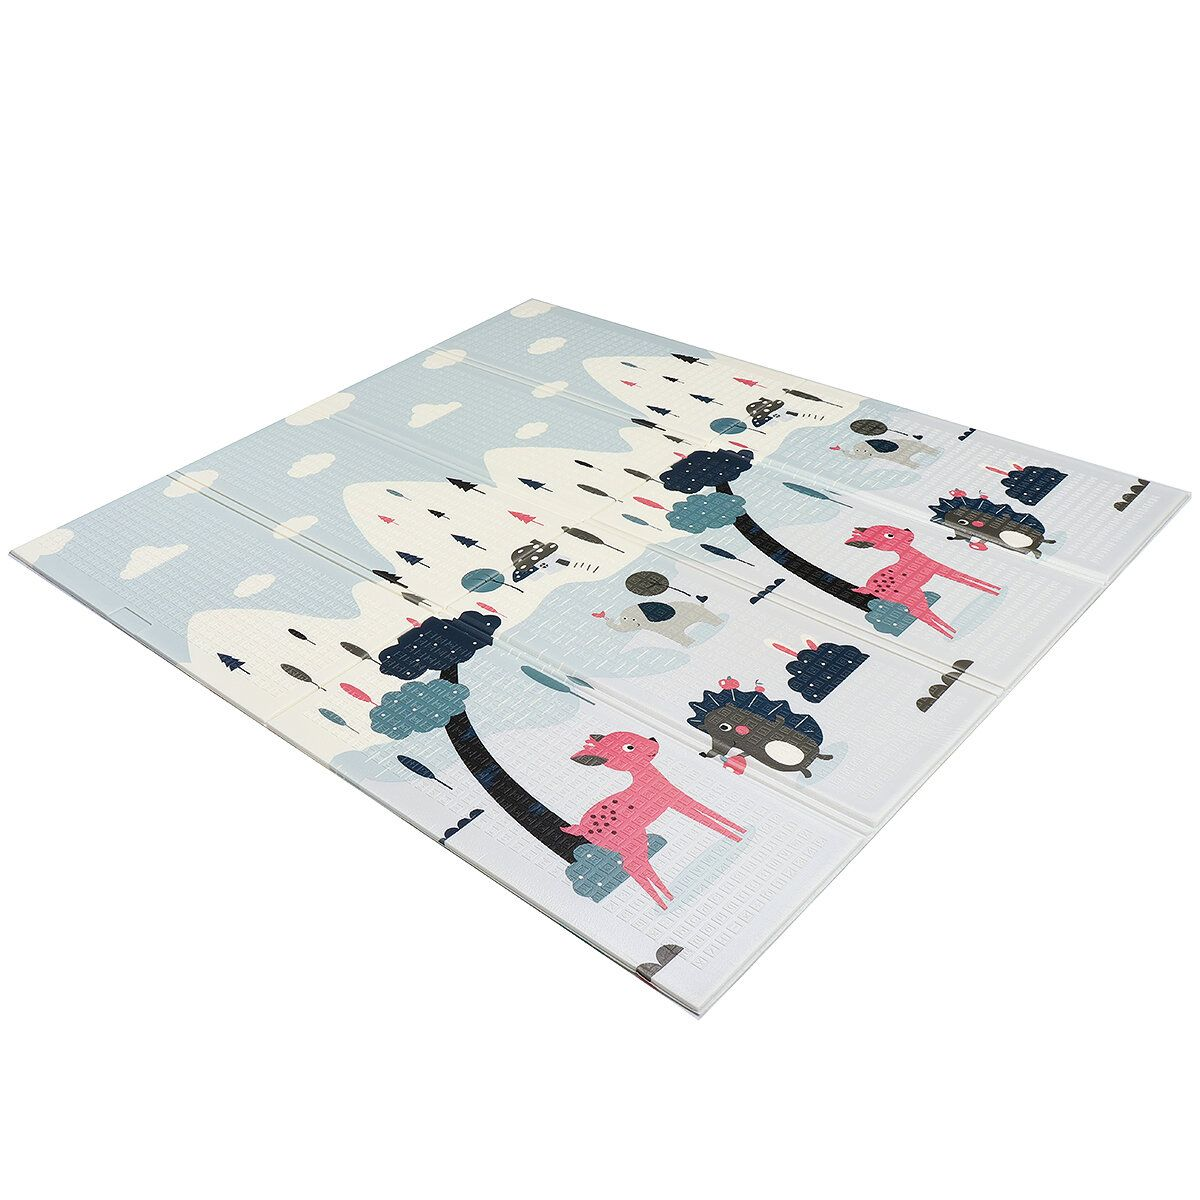 Double Sided Folding Children's Crawling Mat Thickened Climbing Mats Baby Game Mat Player for Kids Activity